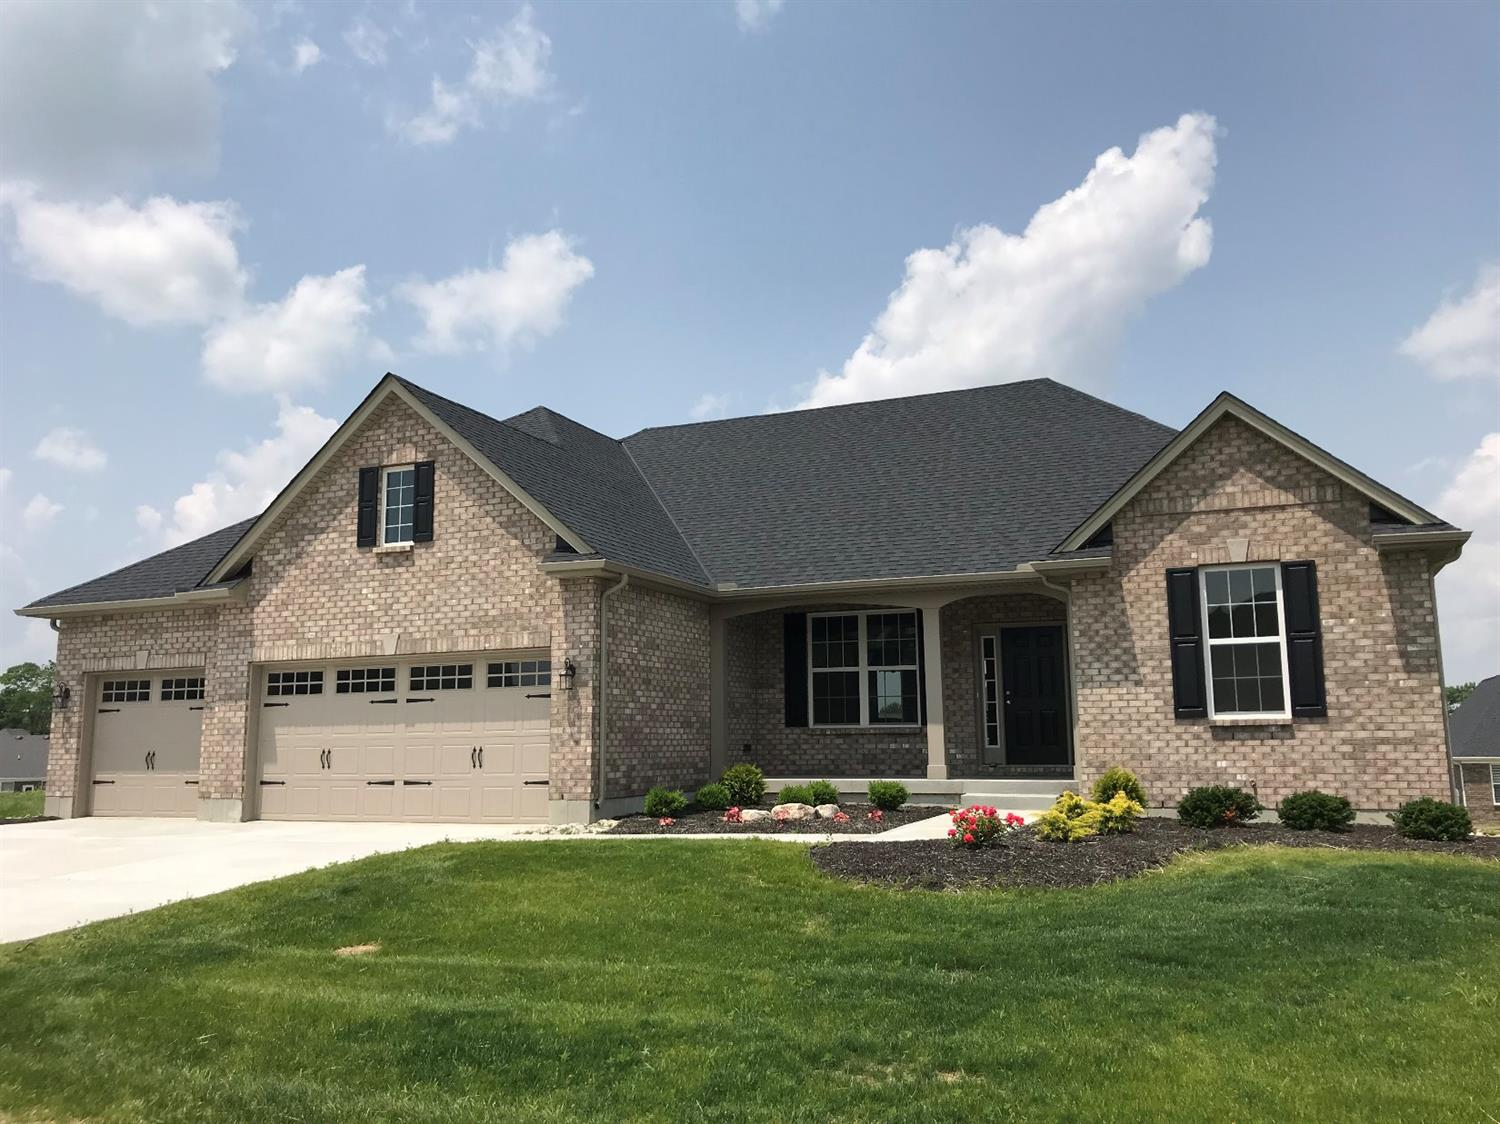 Property for sale at 5300 Mariners Way, Liberty Twp,  Ohio 45011